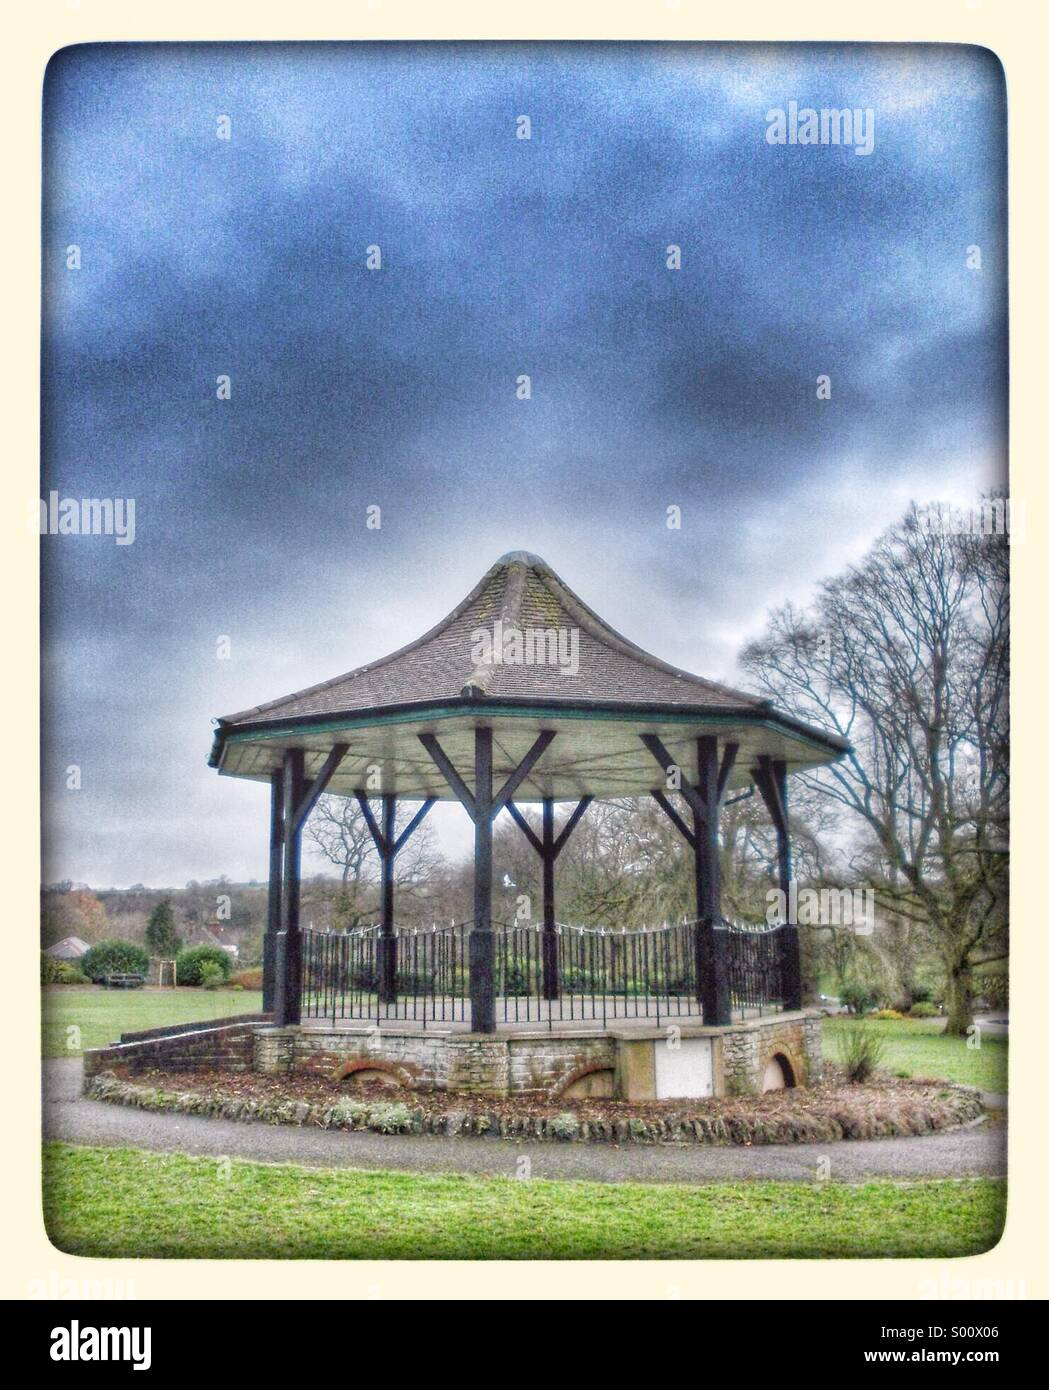 Old-fashioned bandstand in a park in winter - Stock Image